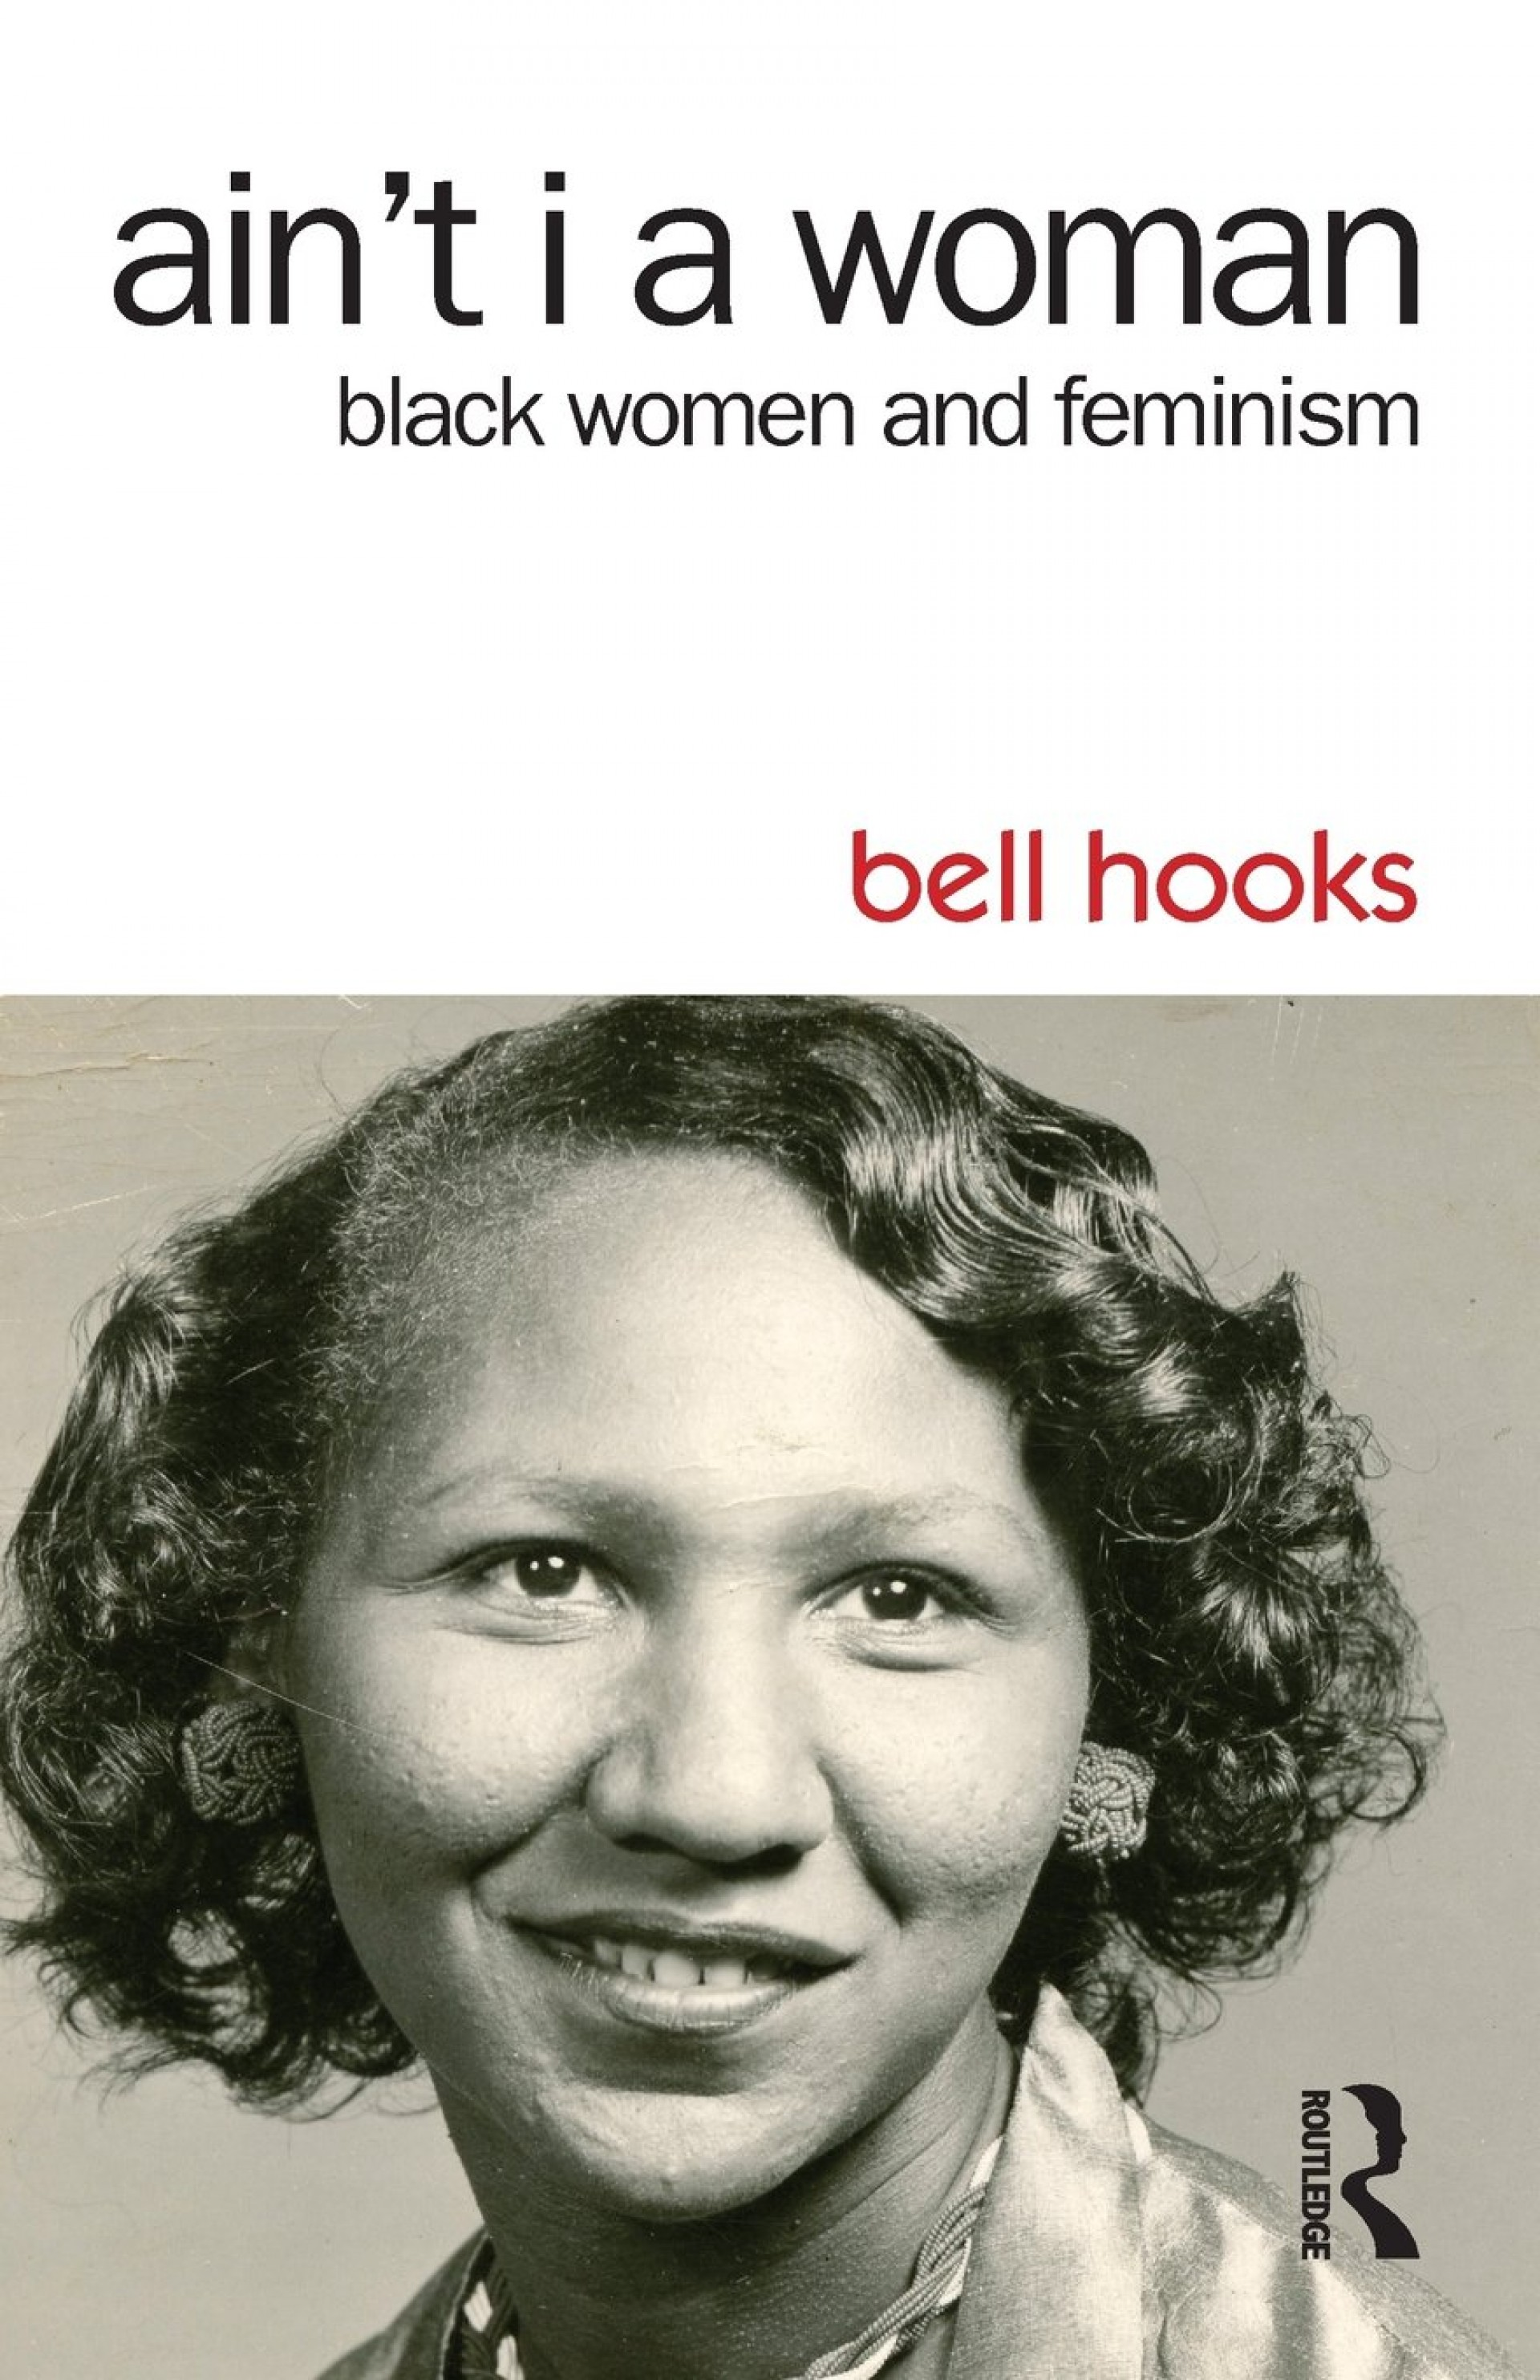 003 Essay Example 71kbnqfypdl Bell Hooks Best Essays Keeping Close To Home Patriarchy Feminism 1920